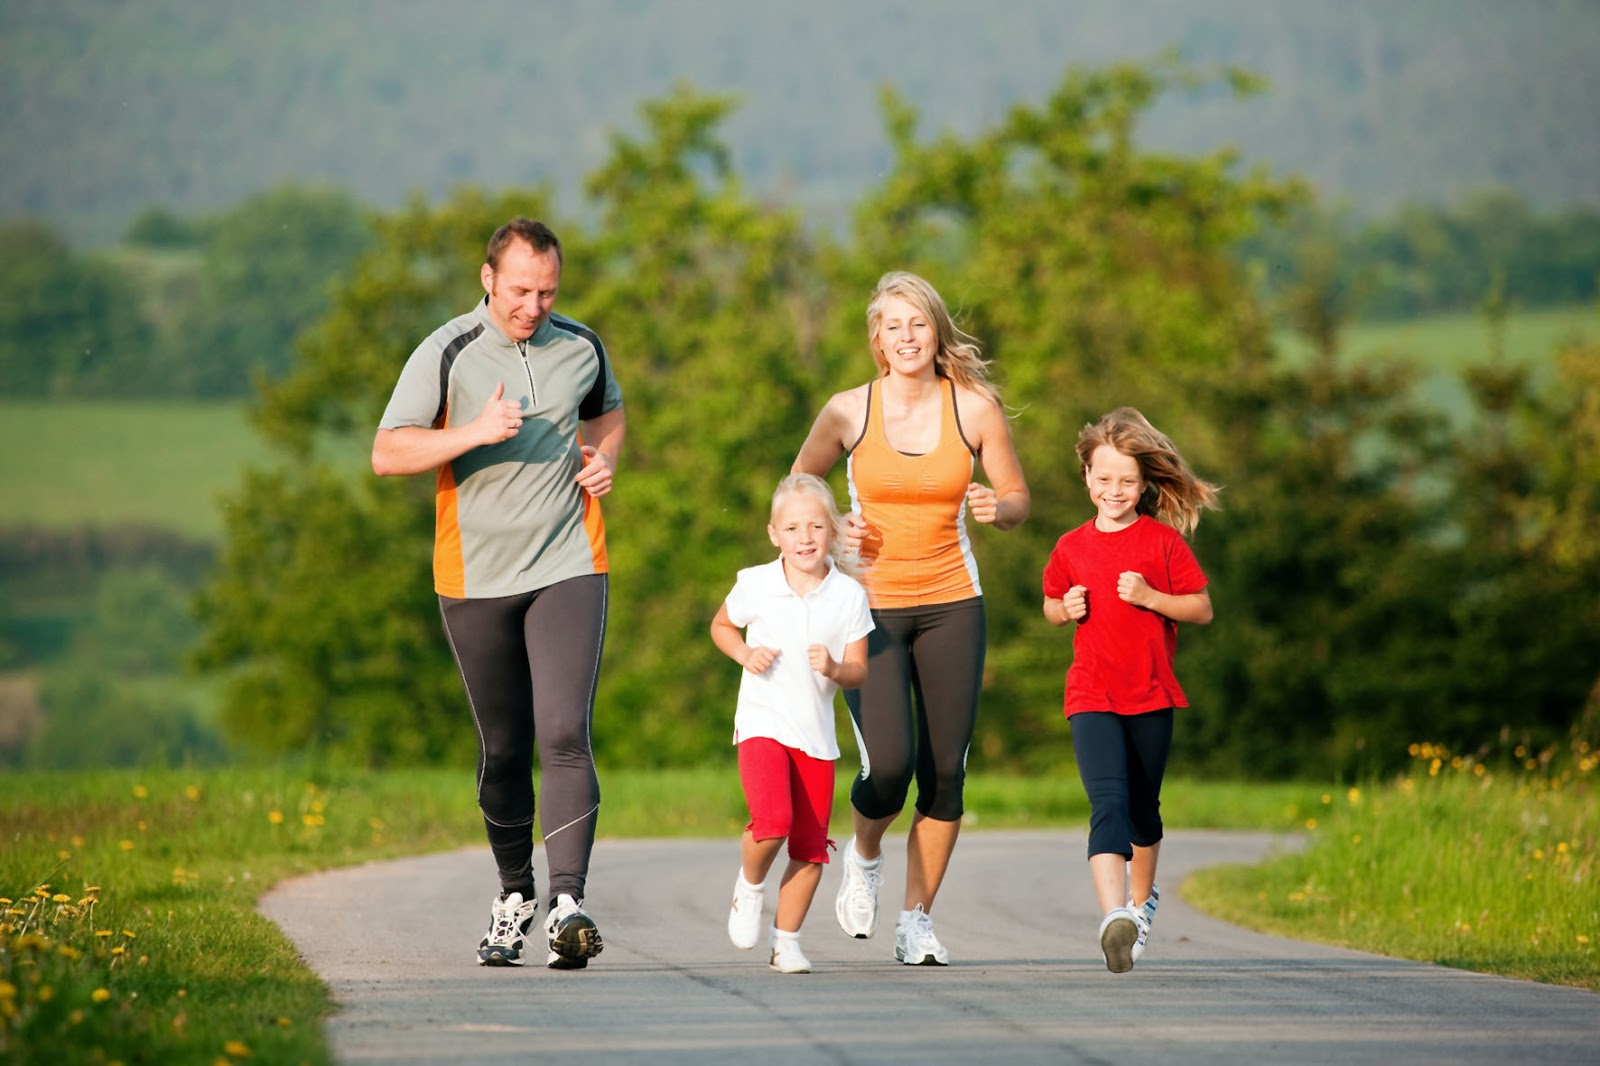 lifestyle choices as a factor on improving longevity